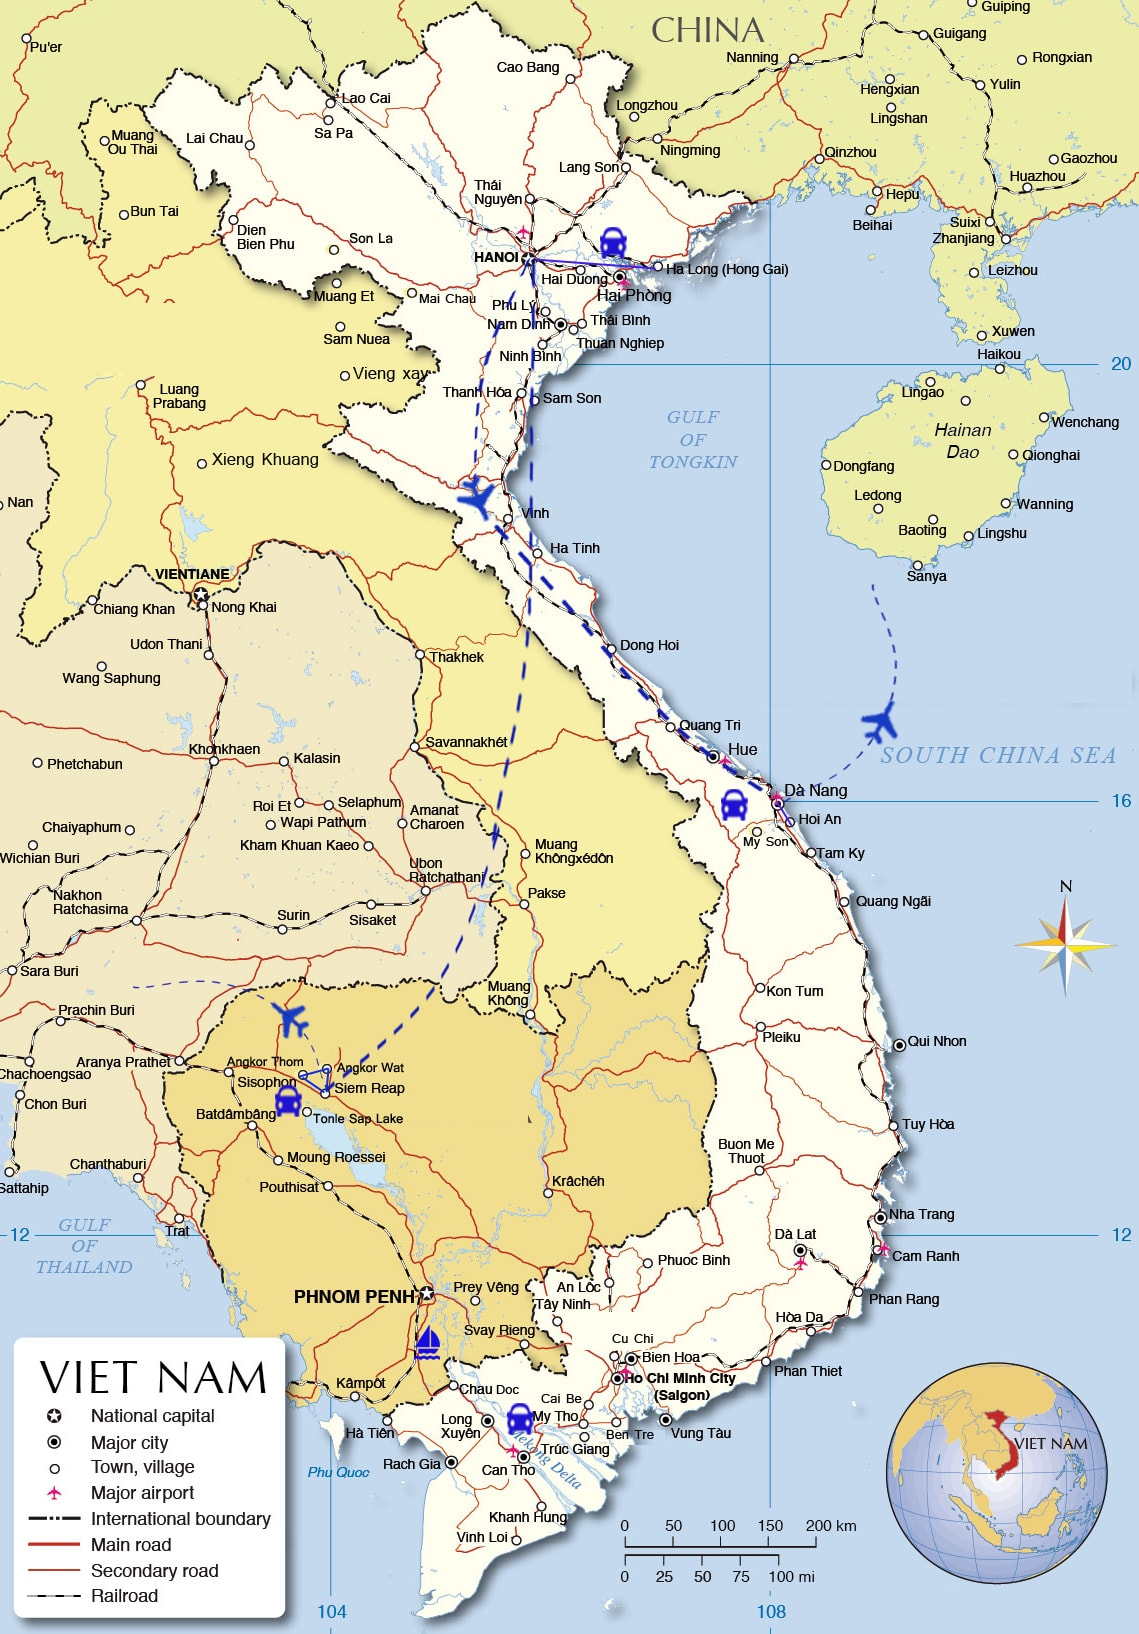 ILT01: Quick Cambodia and Vietnam Tour - 8 days from Siem Reap map